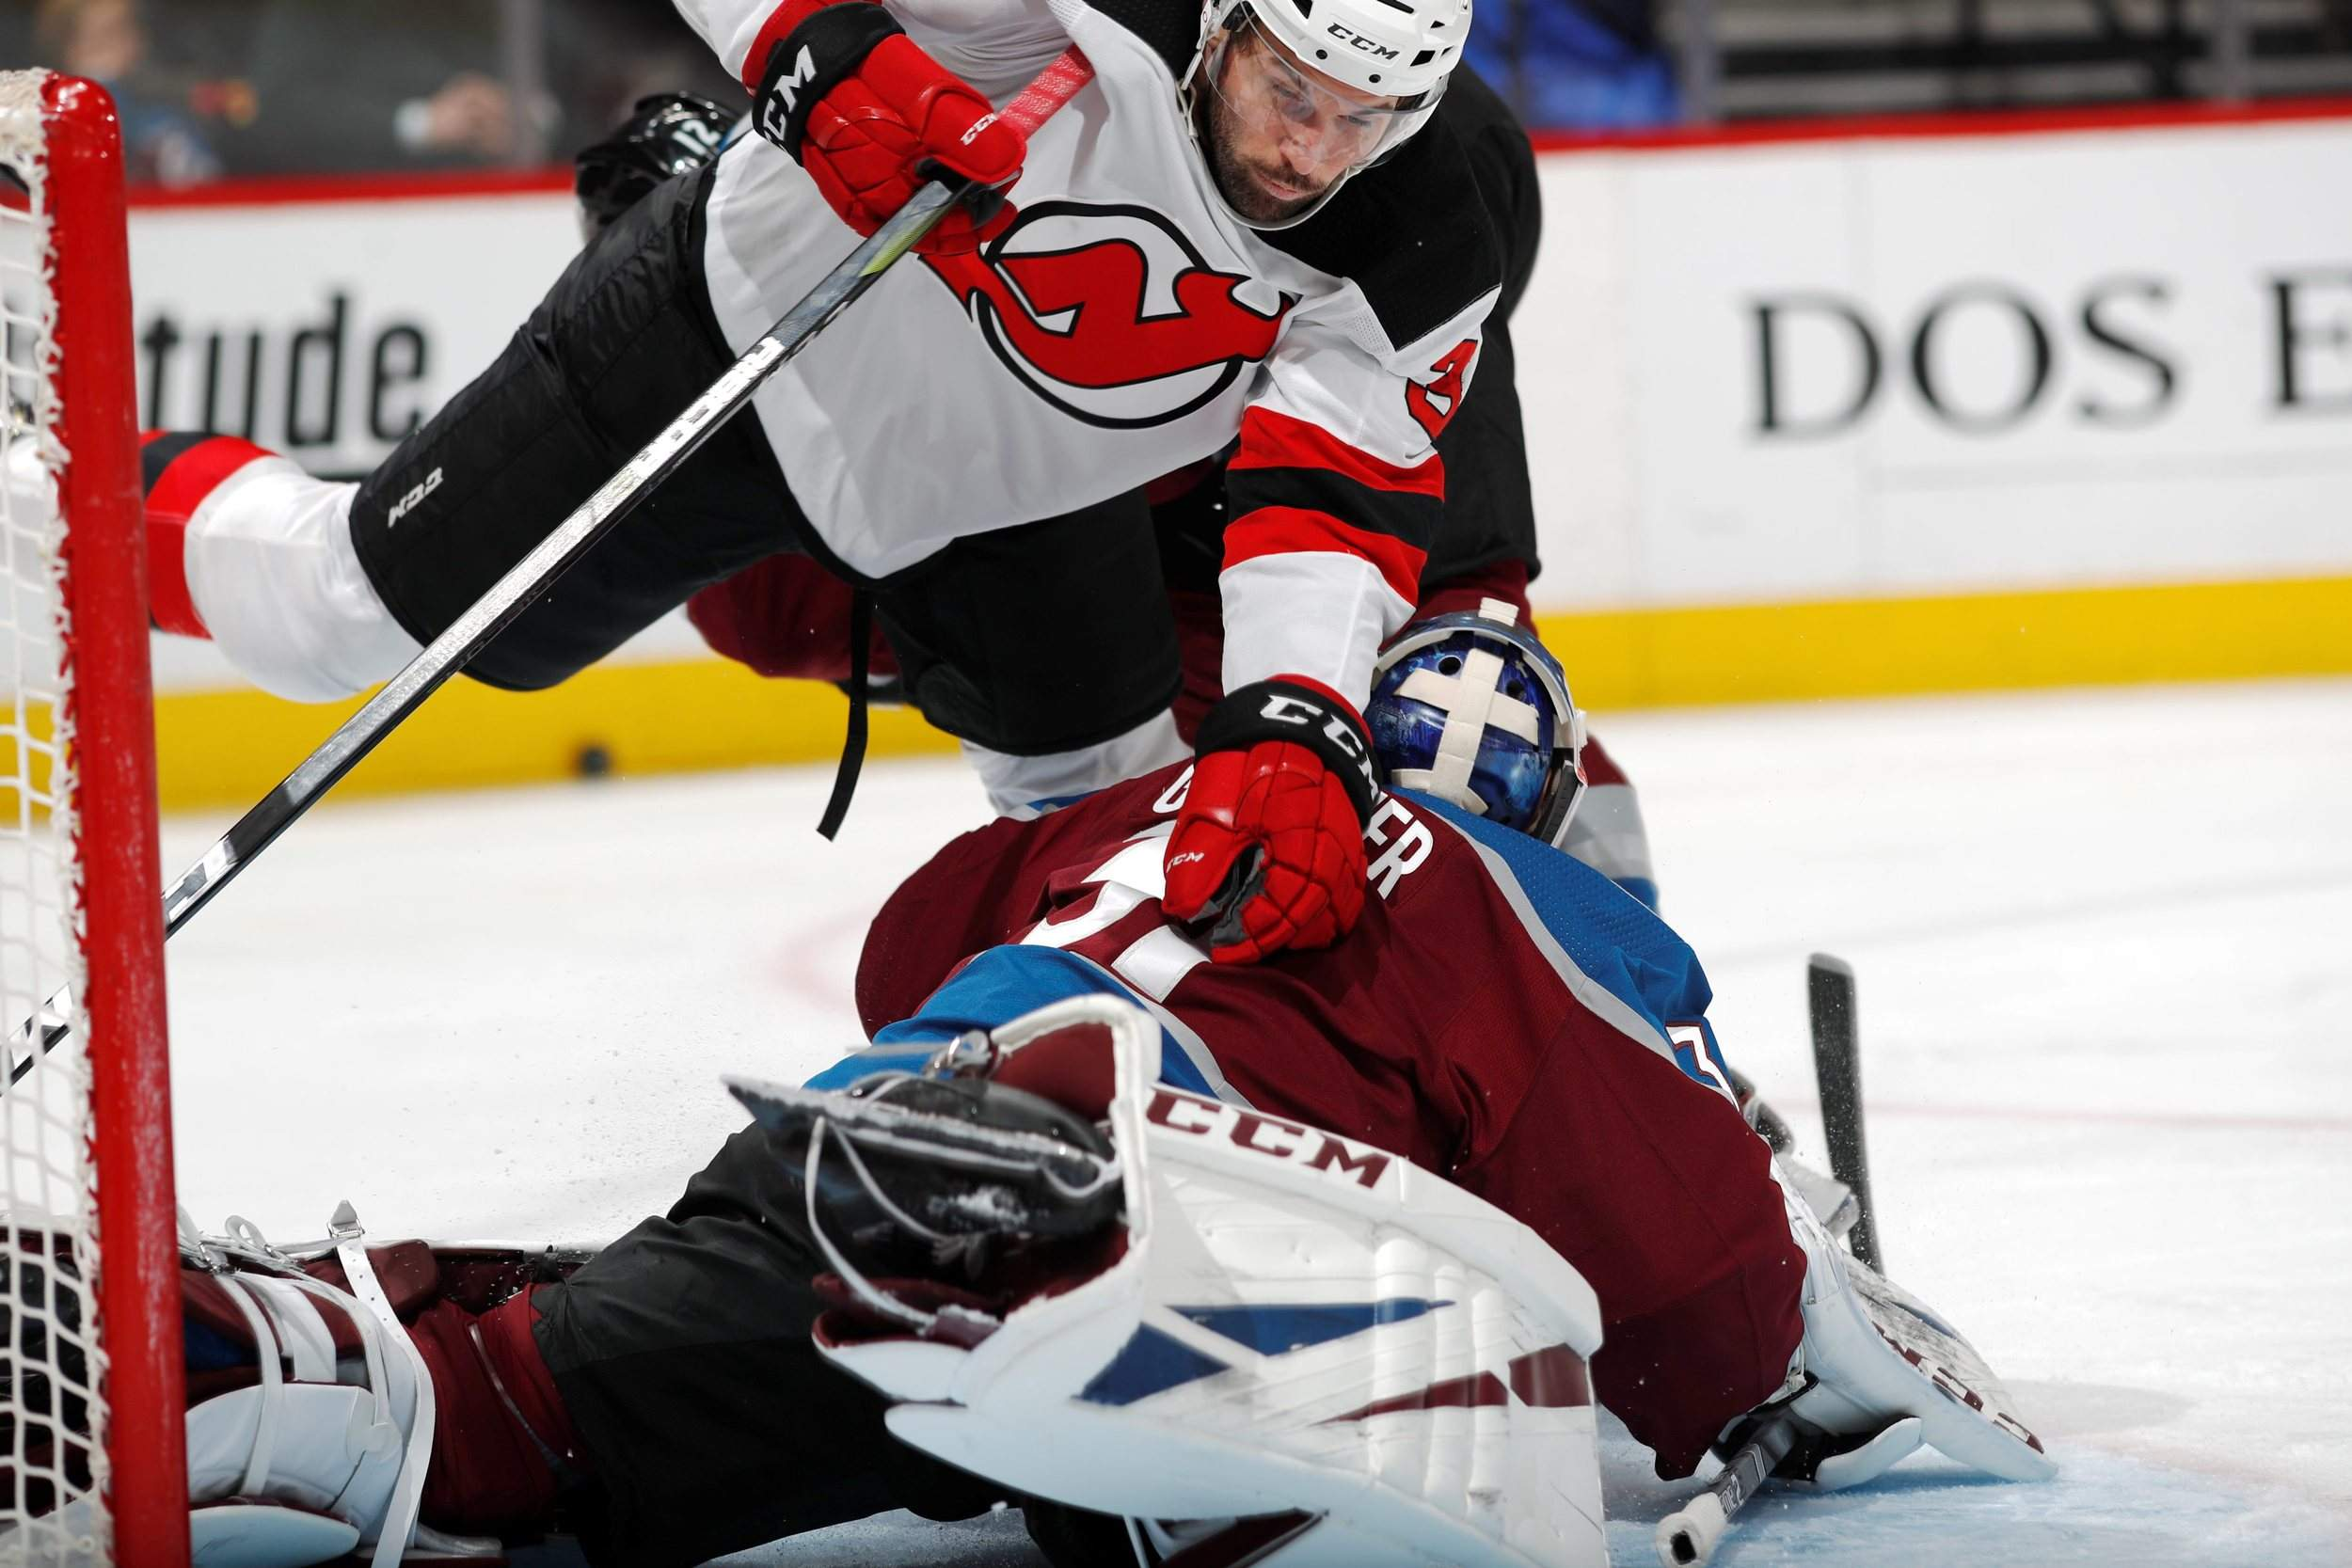 Avs blank Devils to keep playoff hopes alive caa2c7b15